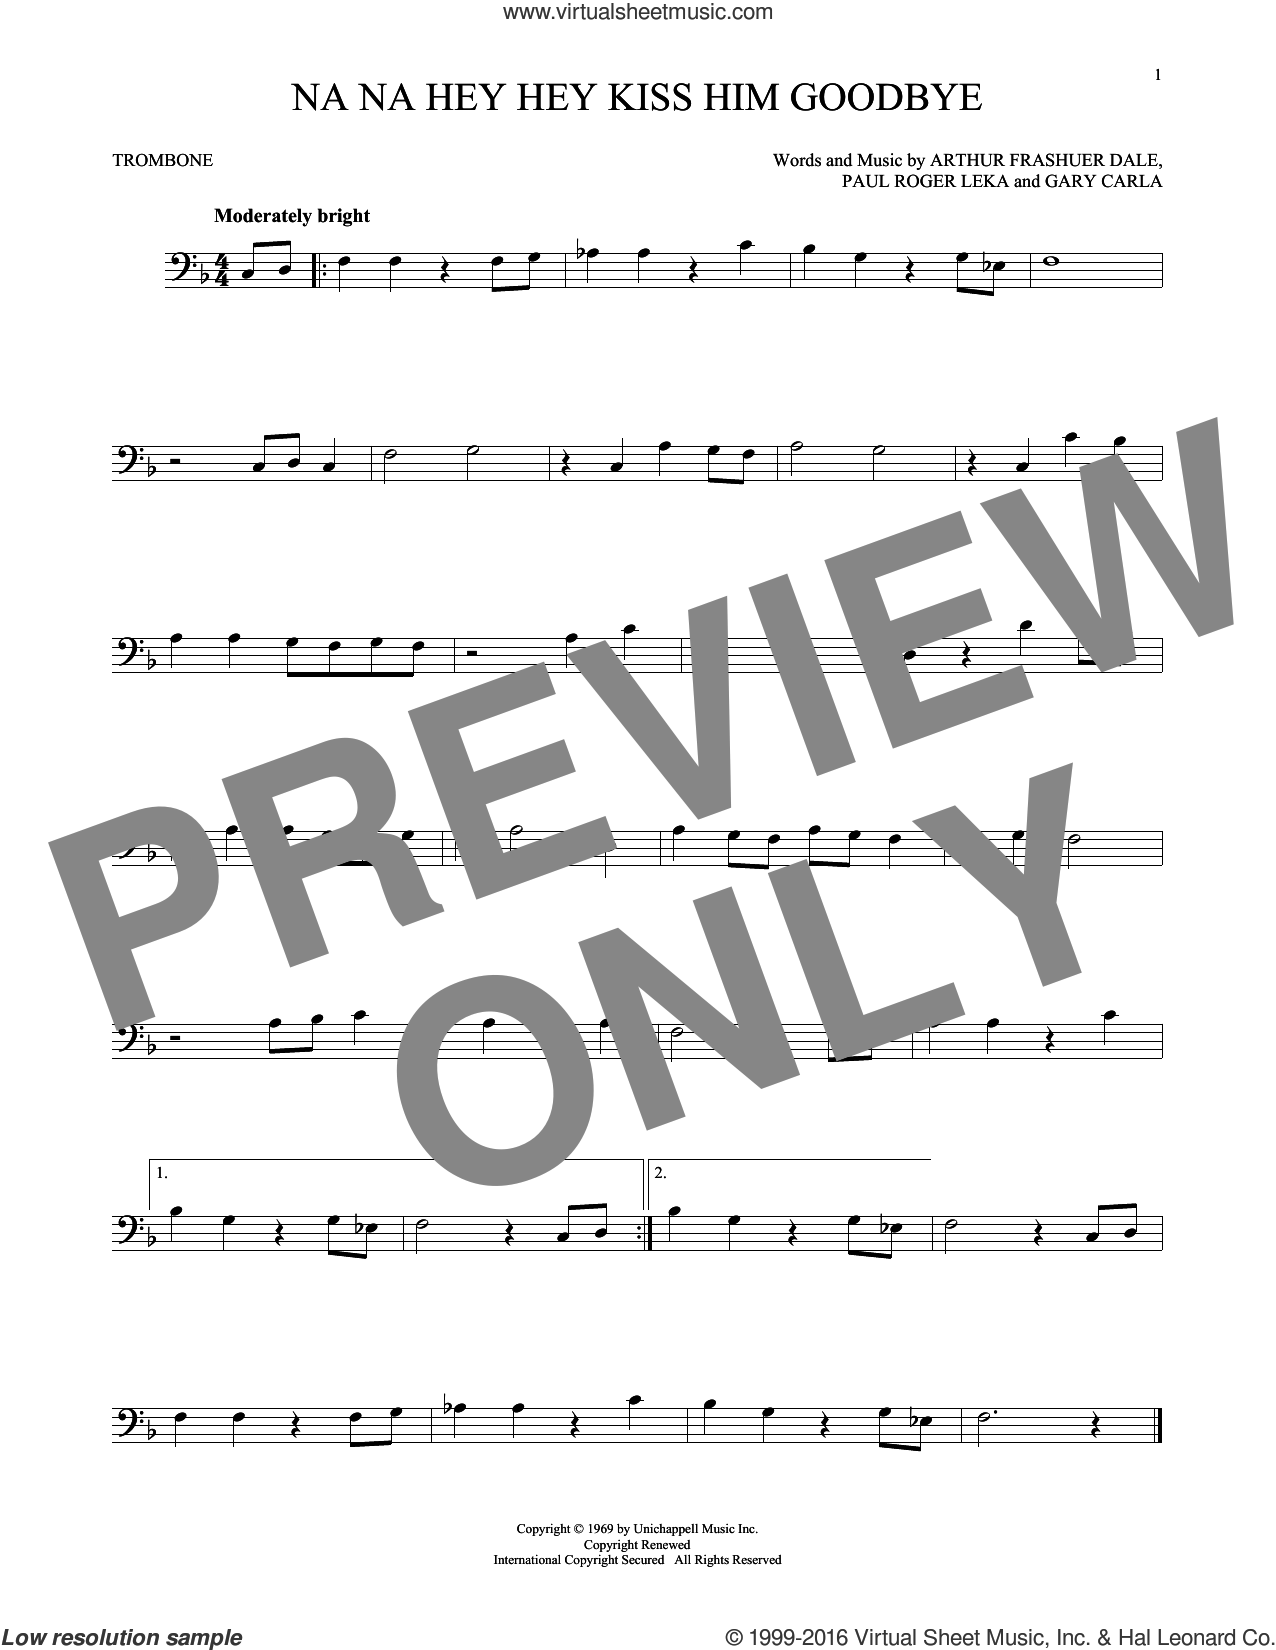 Na Na Hey Hey Kiss Him Goodbye sheet music for trombone solo by Steam, Dale Frashuer, Gary De Carlo and Paul Leka, intermediate skill level